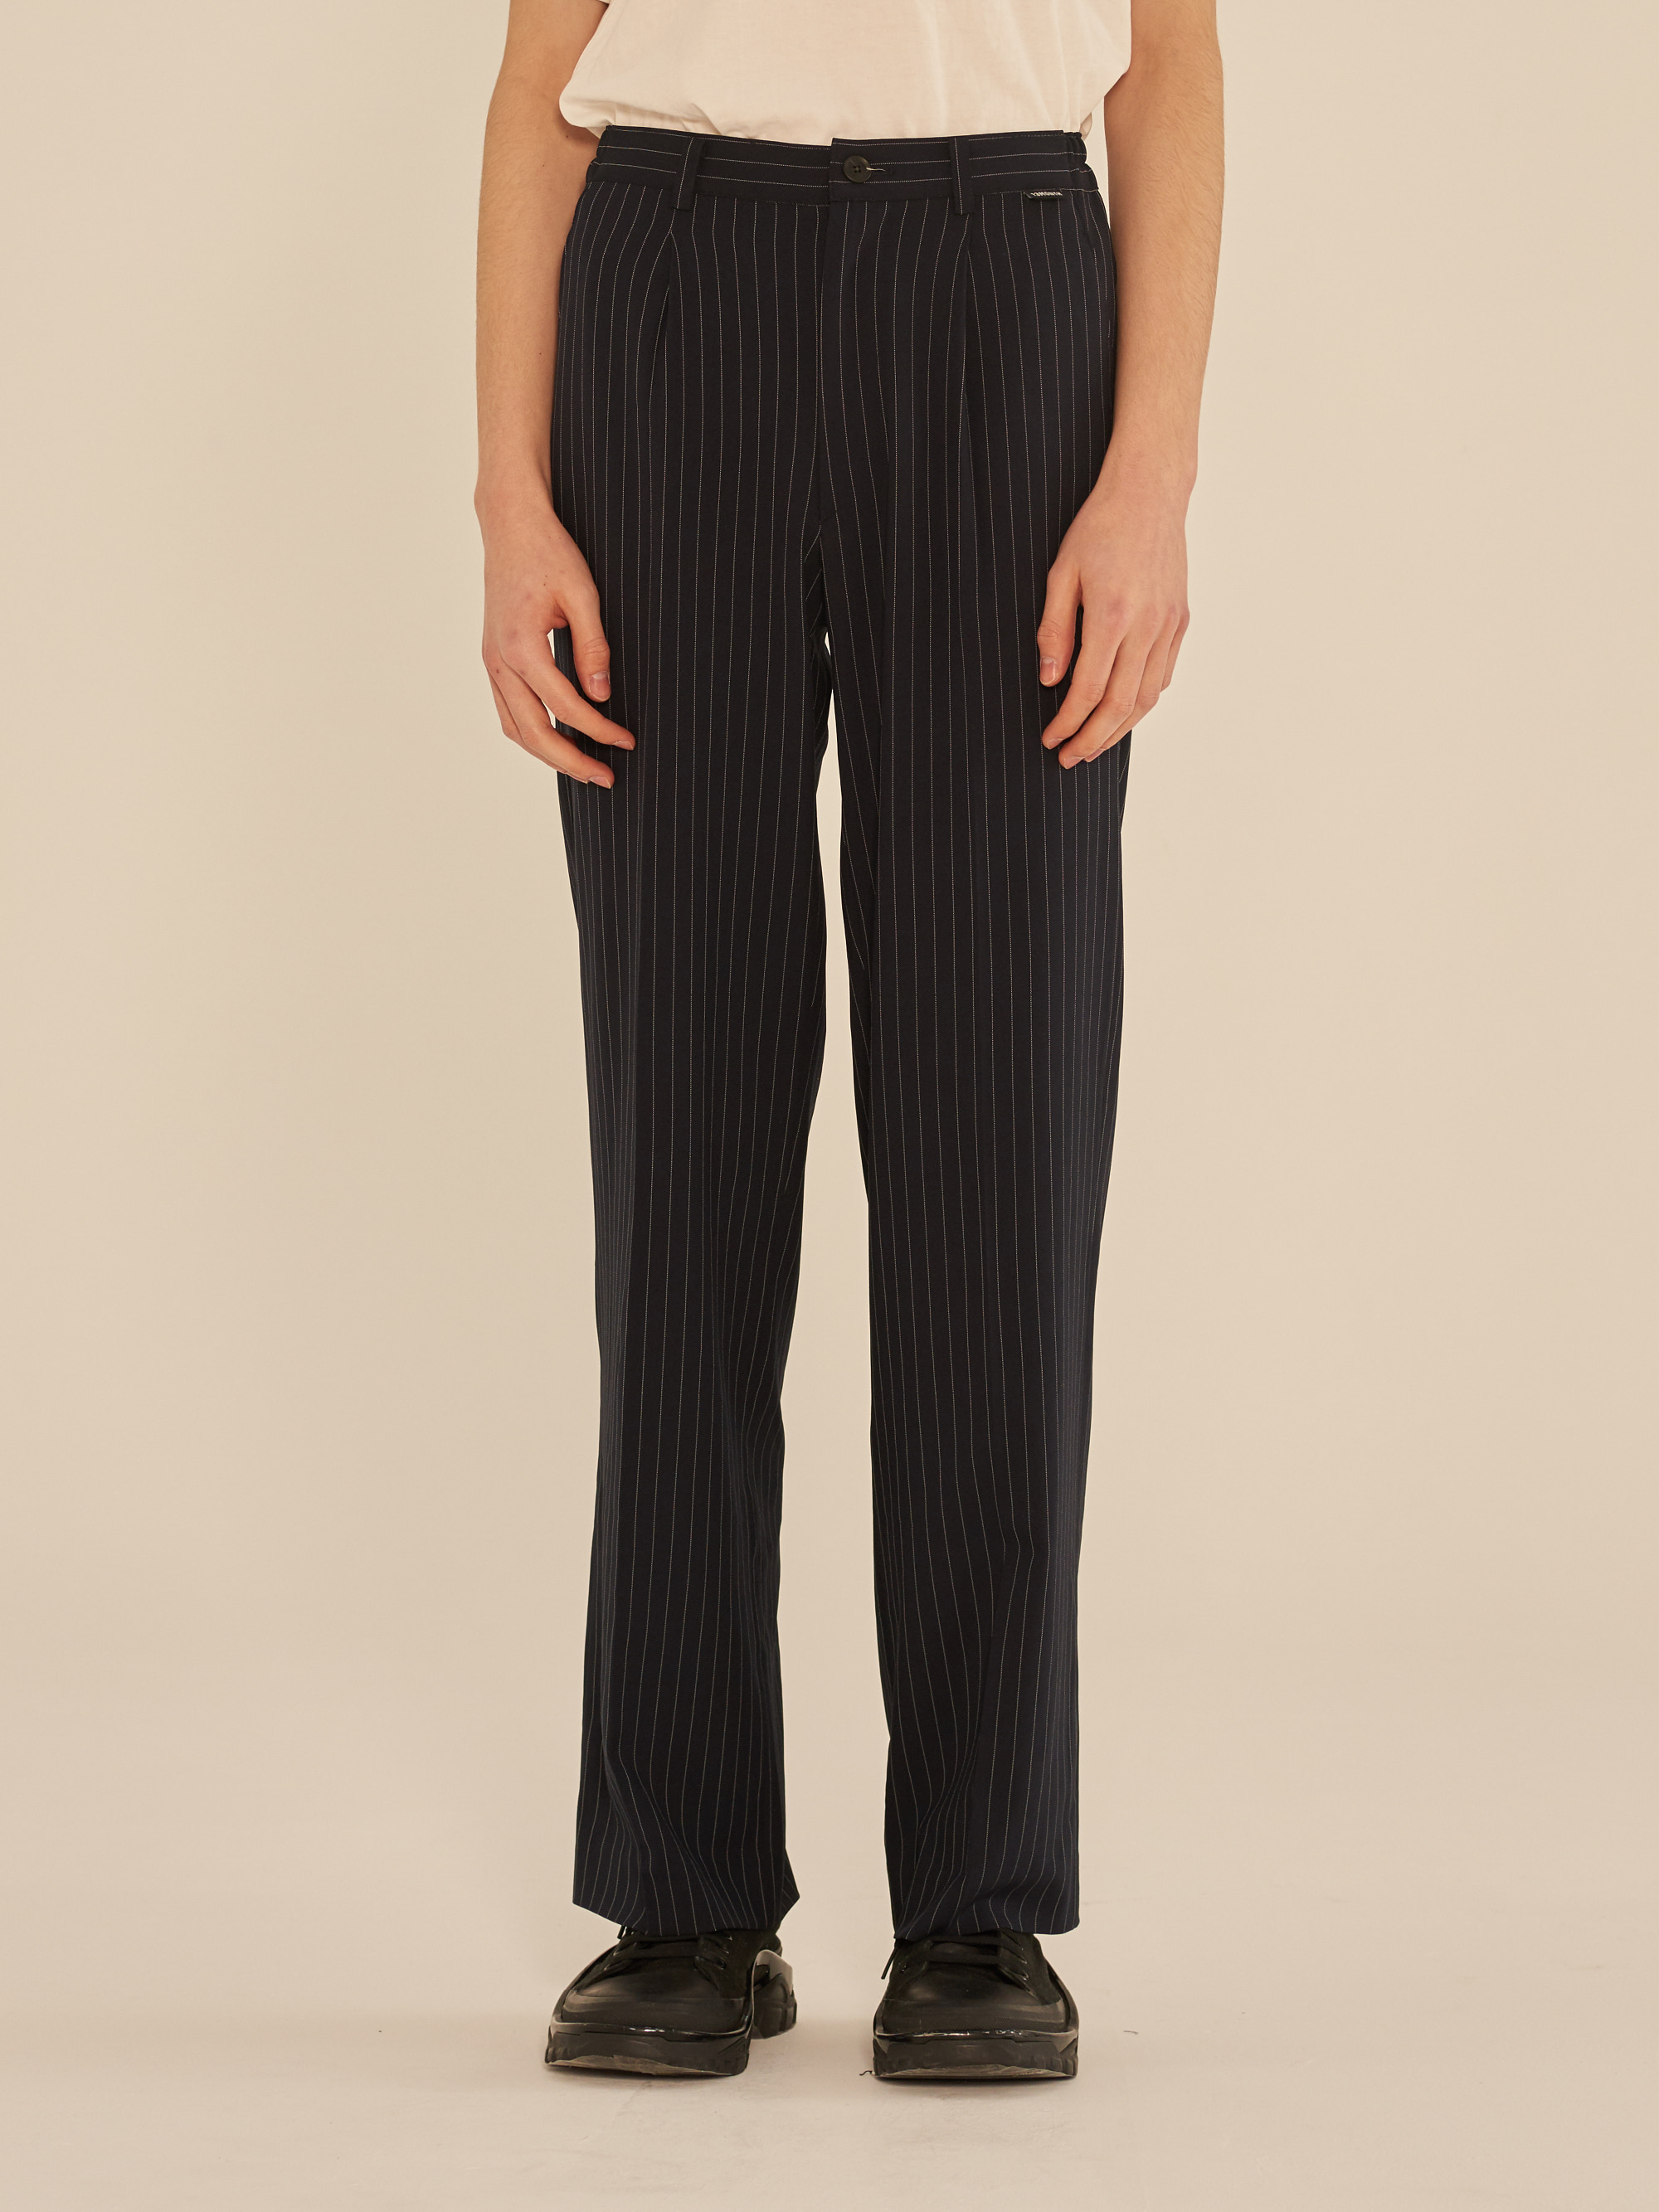 STRIPE WIDE SLACKS PANTS (NAVY)